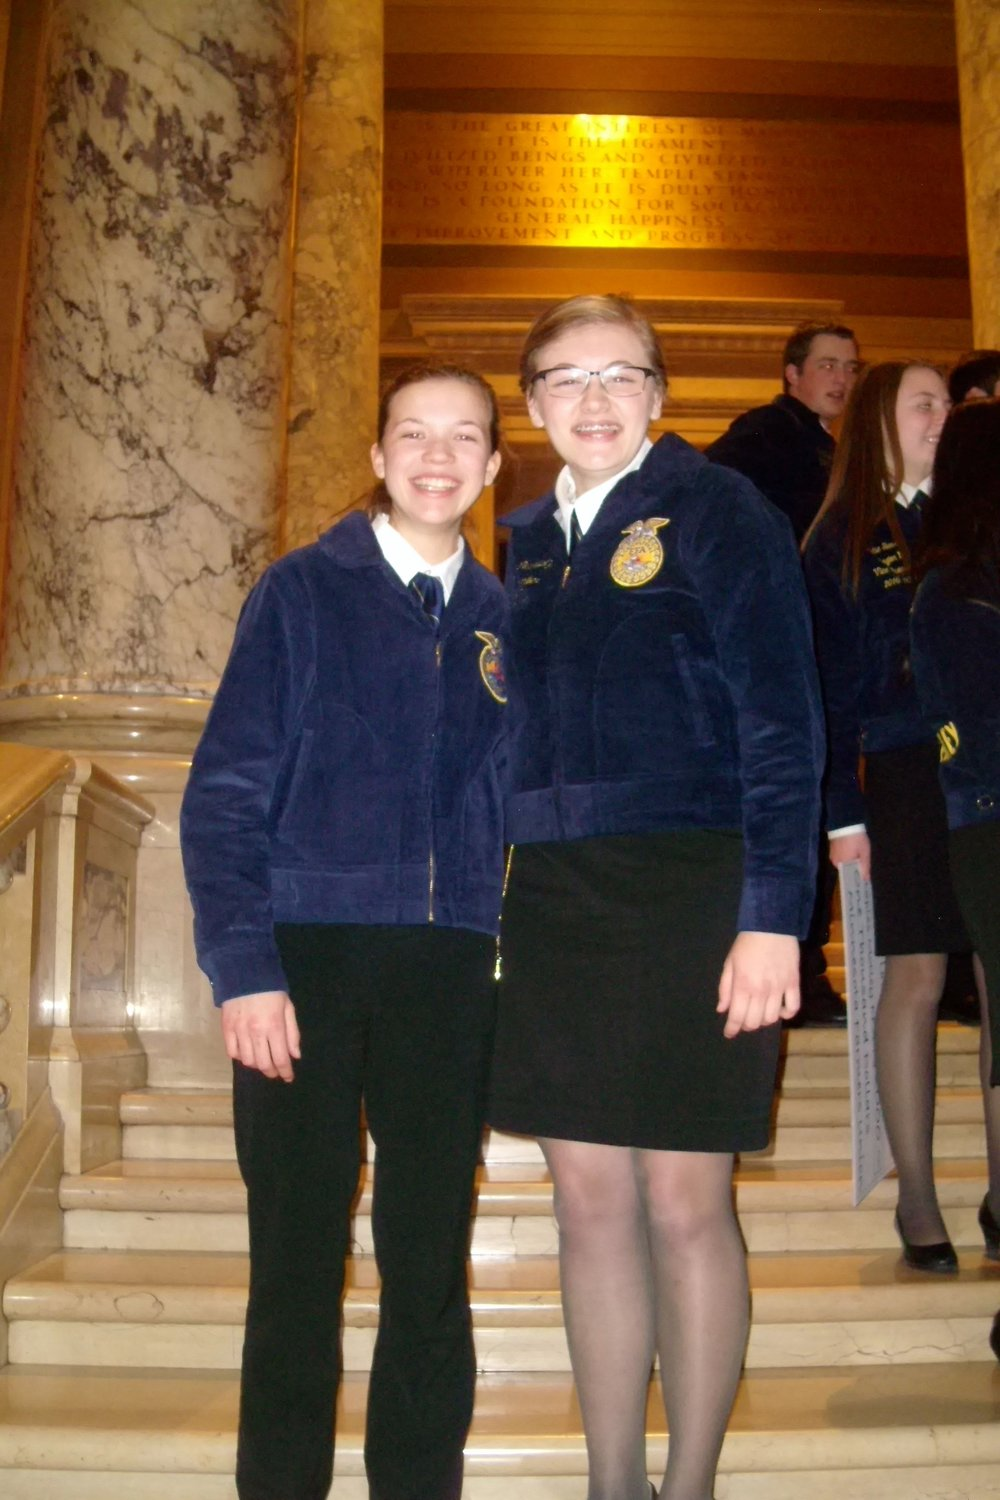 WDC FFA member Jezebel Snyder meets with Minnesota State FFA Reporter Rebecca Paskewitz (Staples-Motley) at the Minnesota State Capitol.